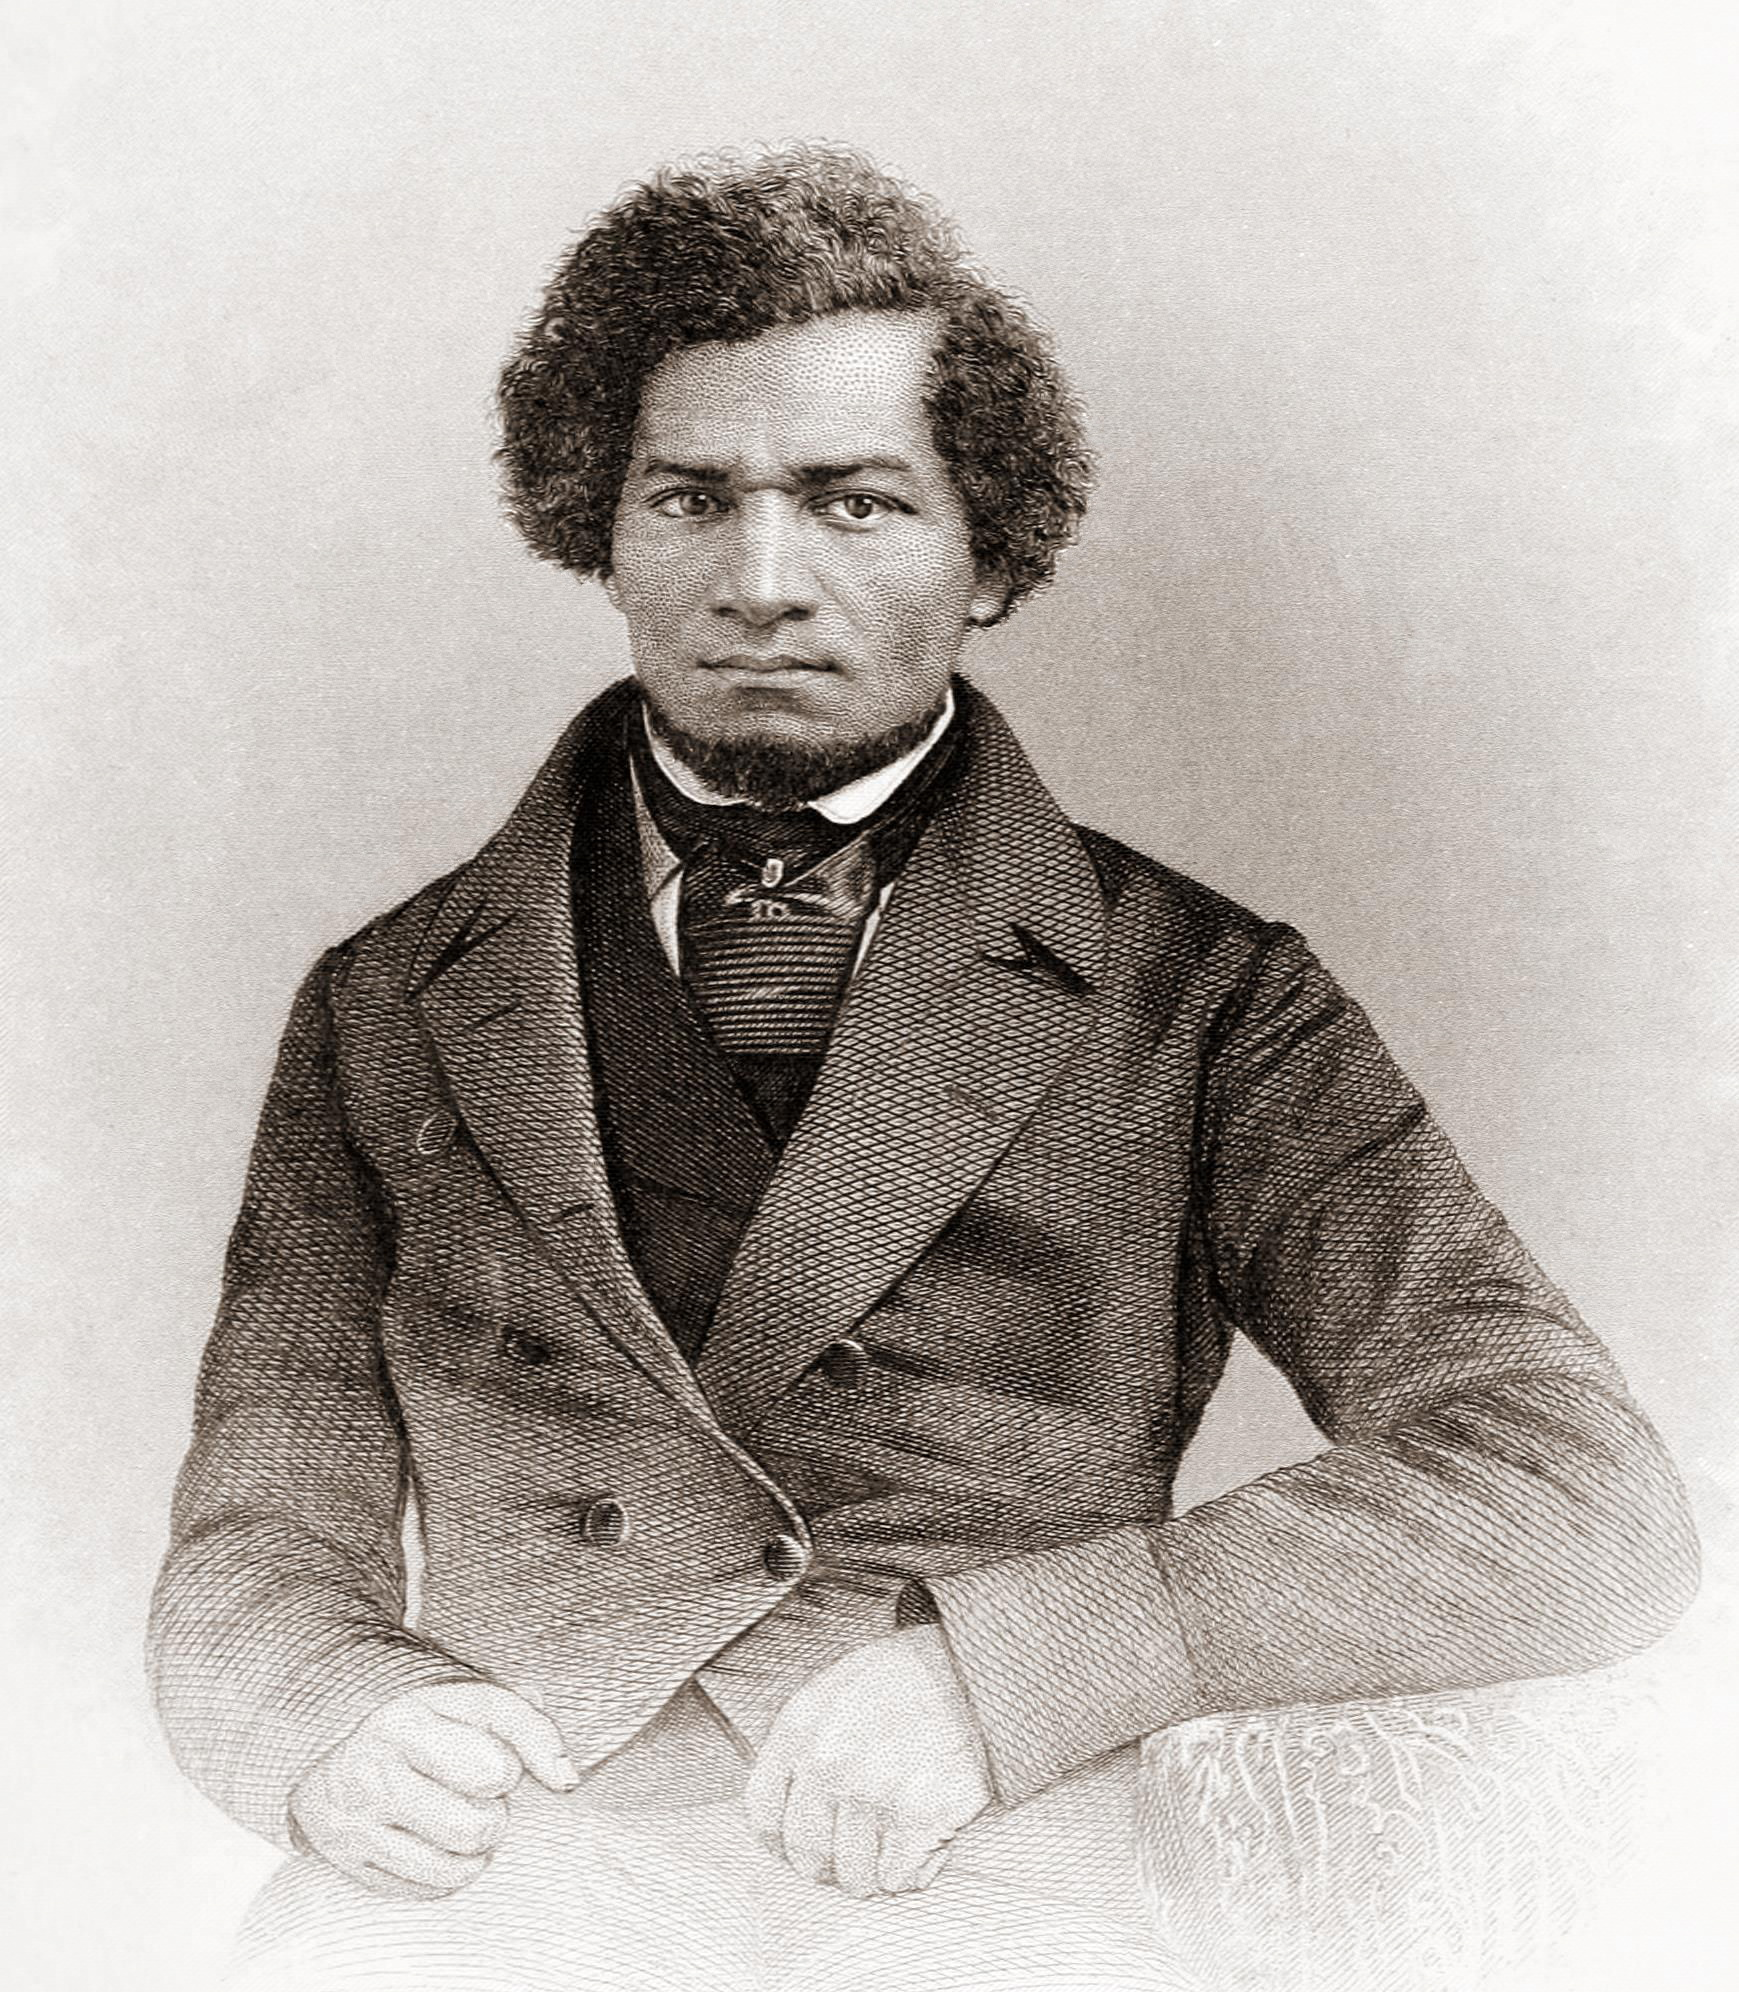 Daguerretotype of Frederick Douglass, dressed in tie and overcoat of the period.